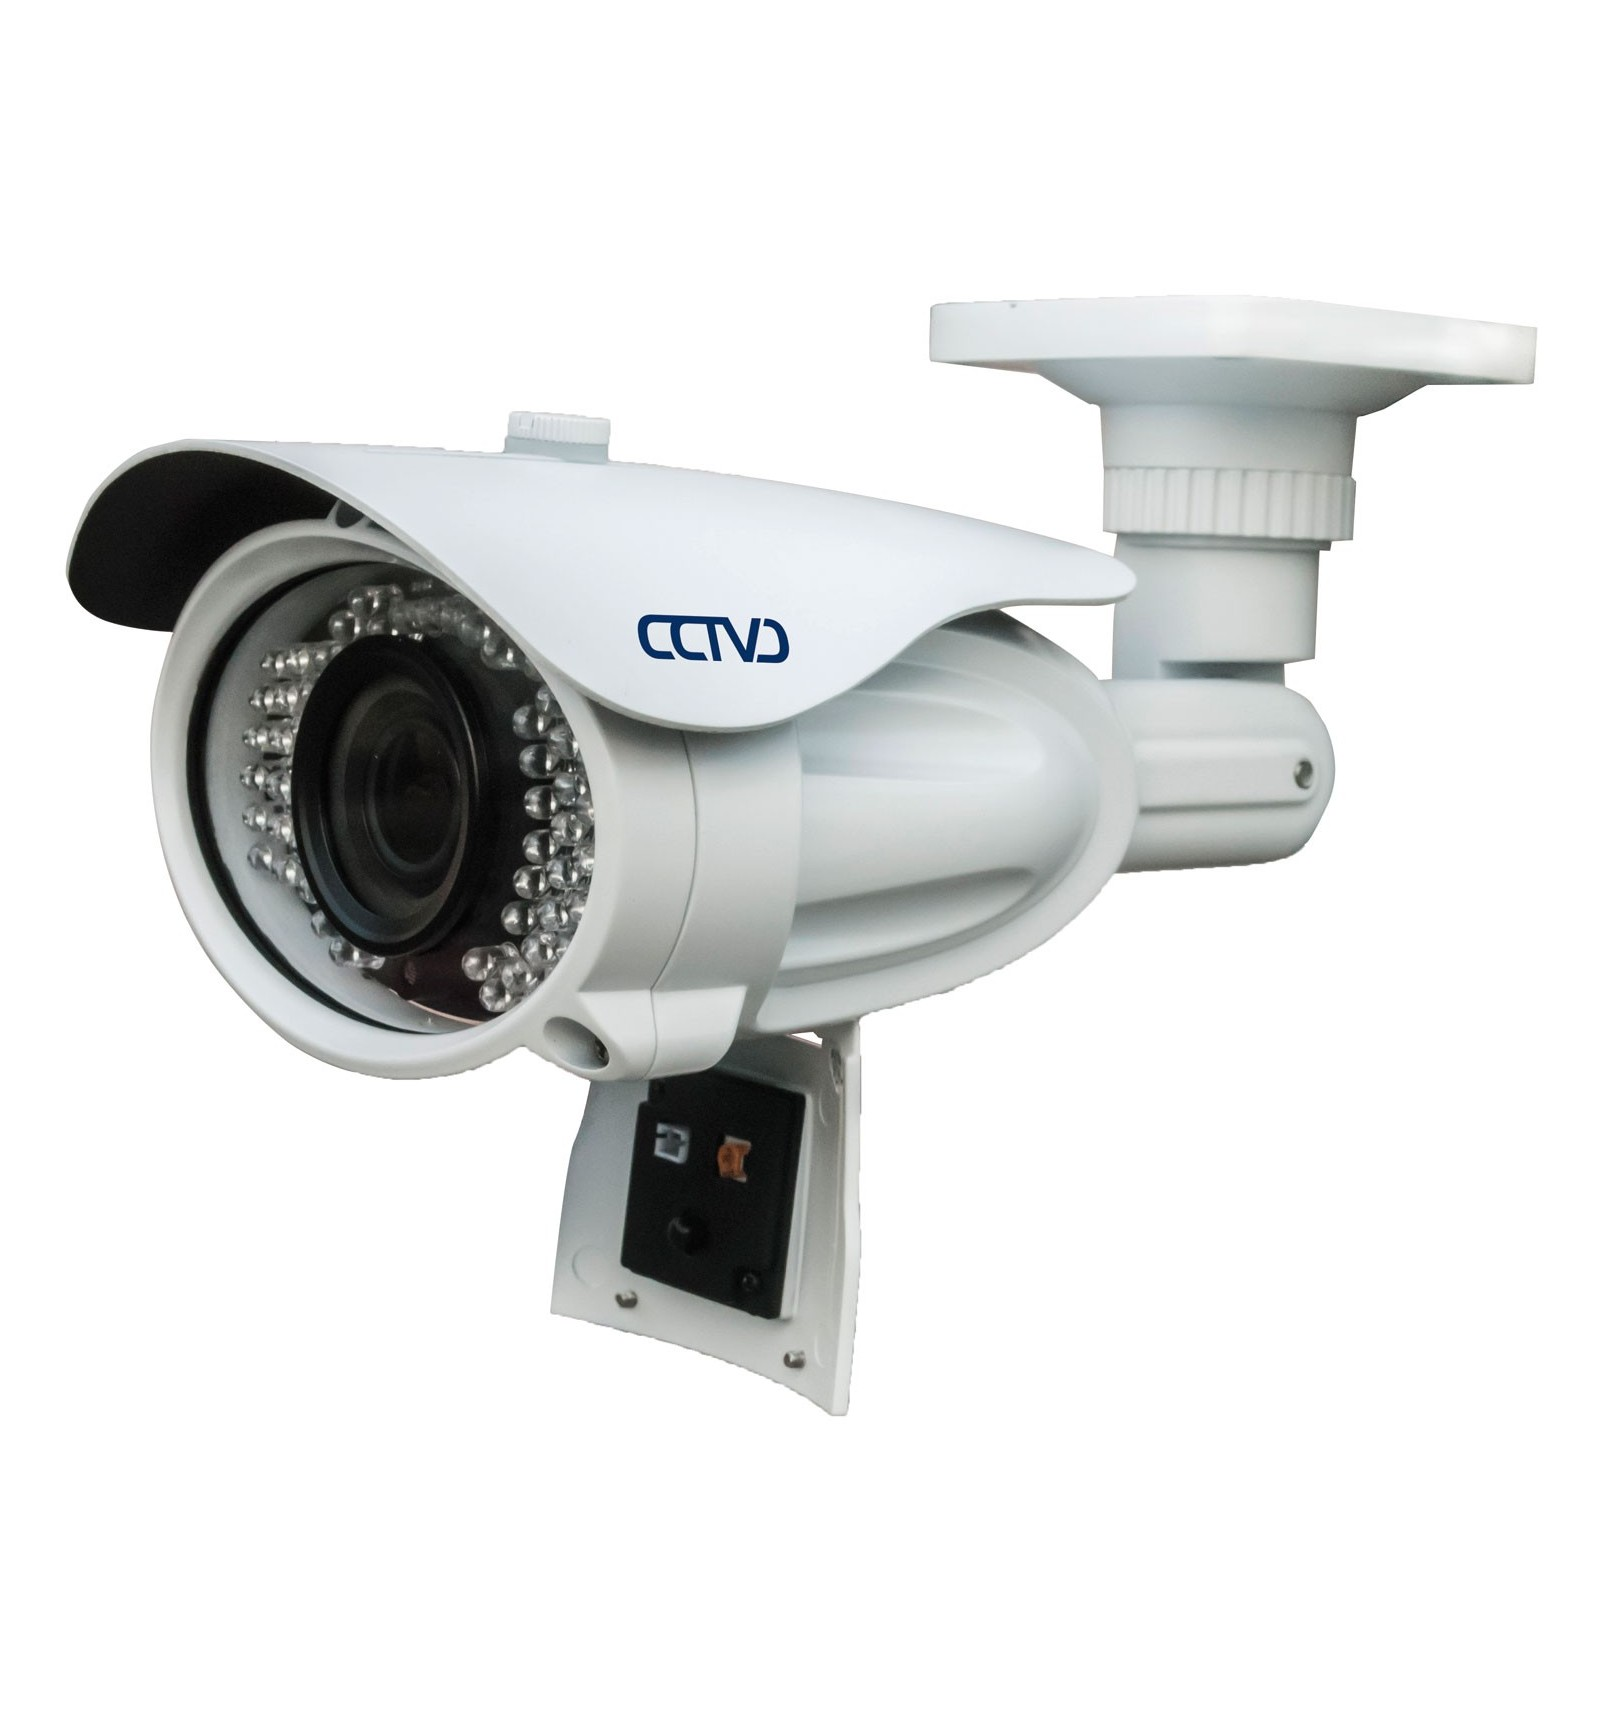 Camara ip alta resolucion gama media for Camara ip exterior